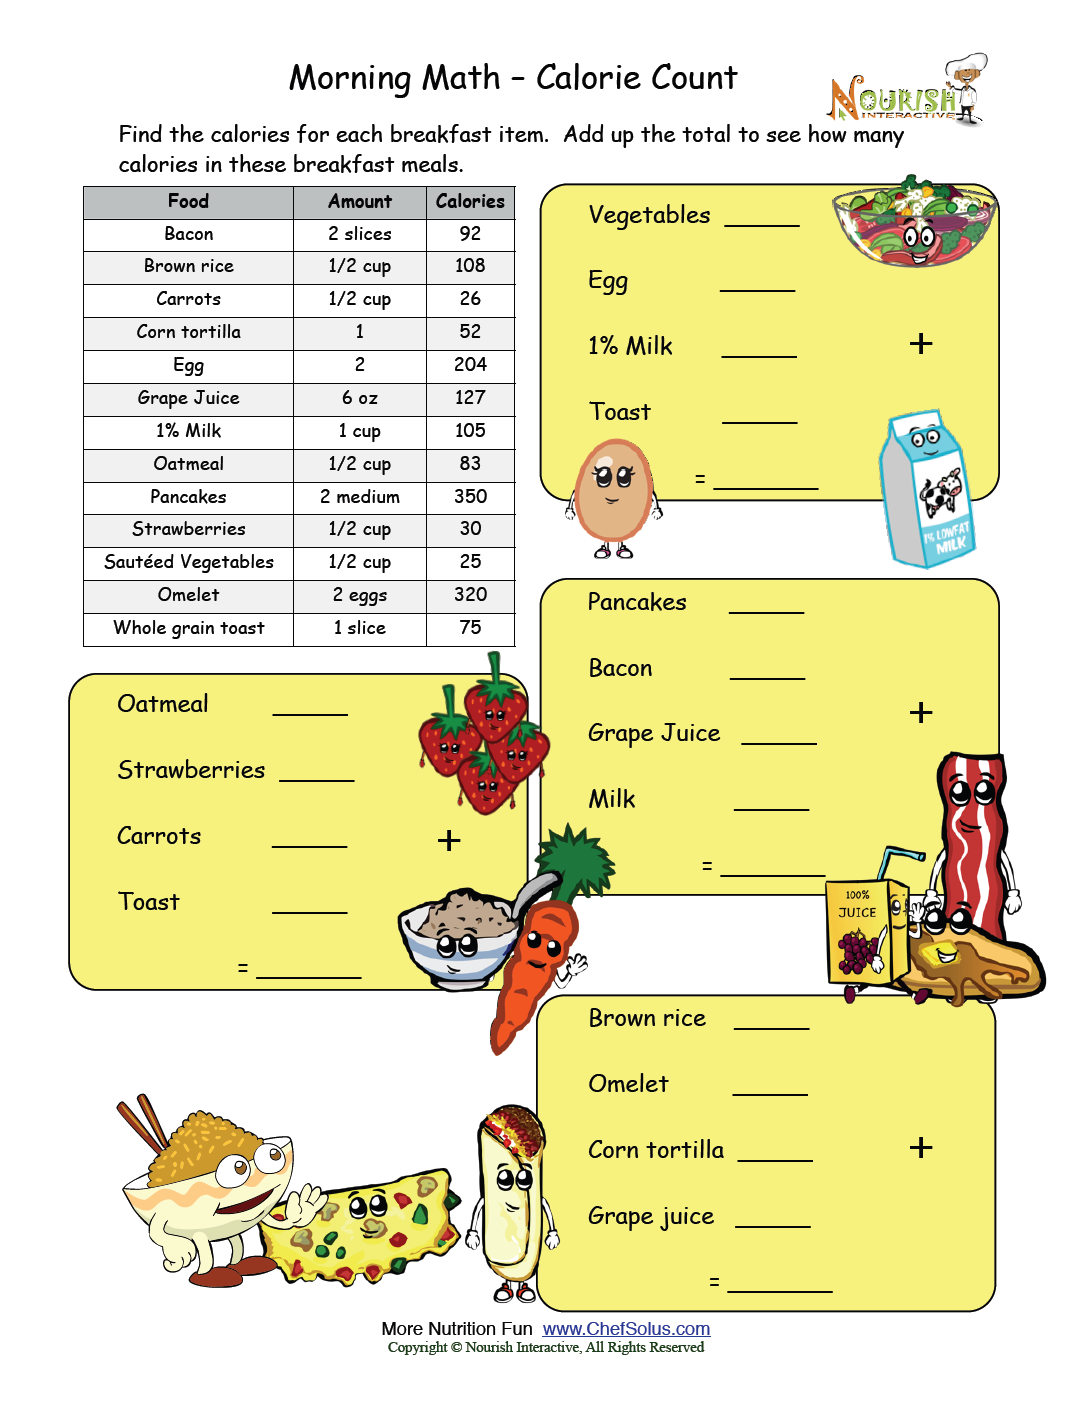 Worksheets Calorie Worksheet morning math calorie count nutrition worksheets and games count